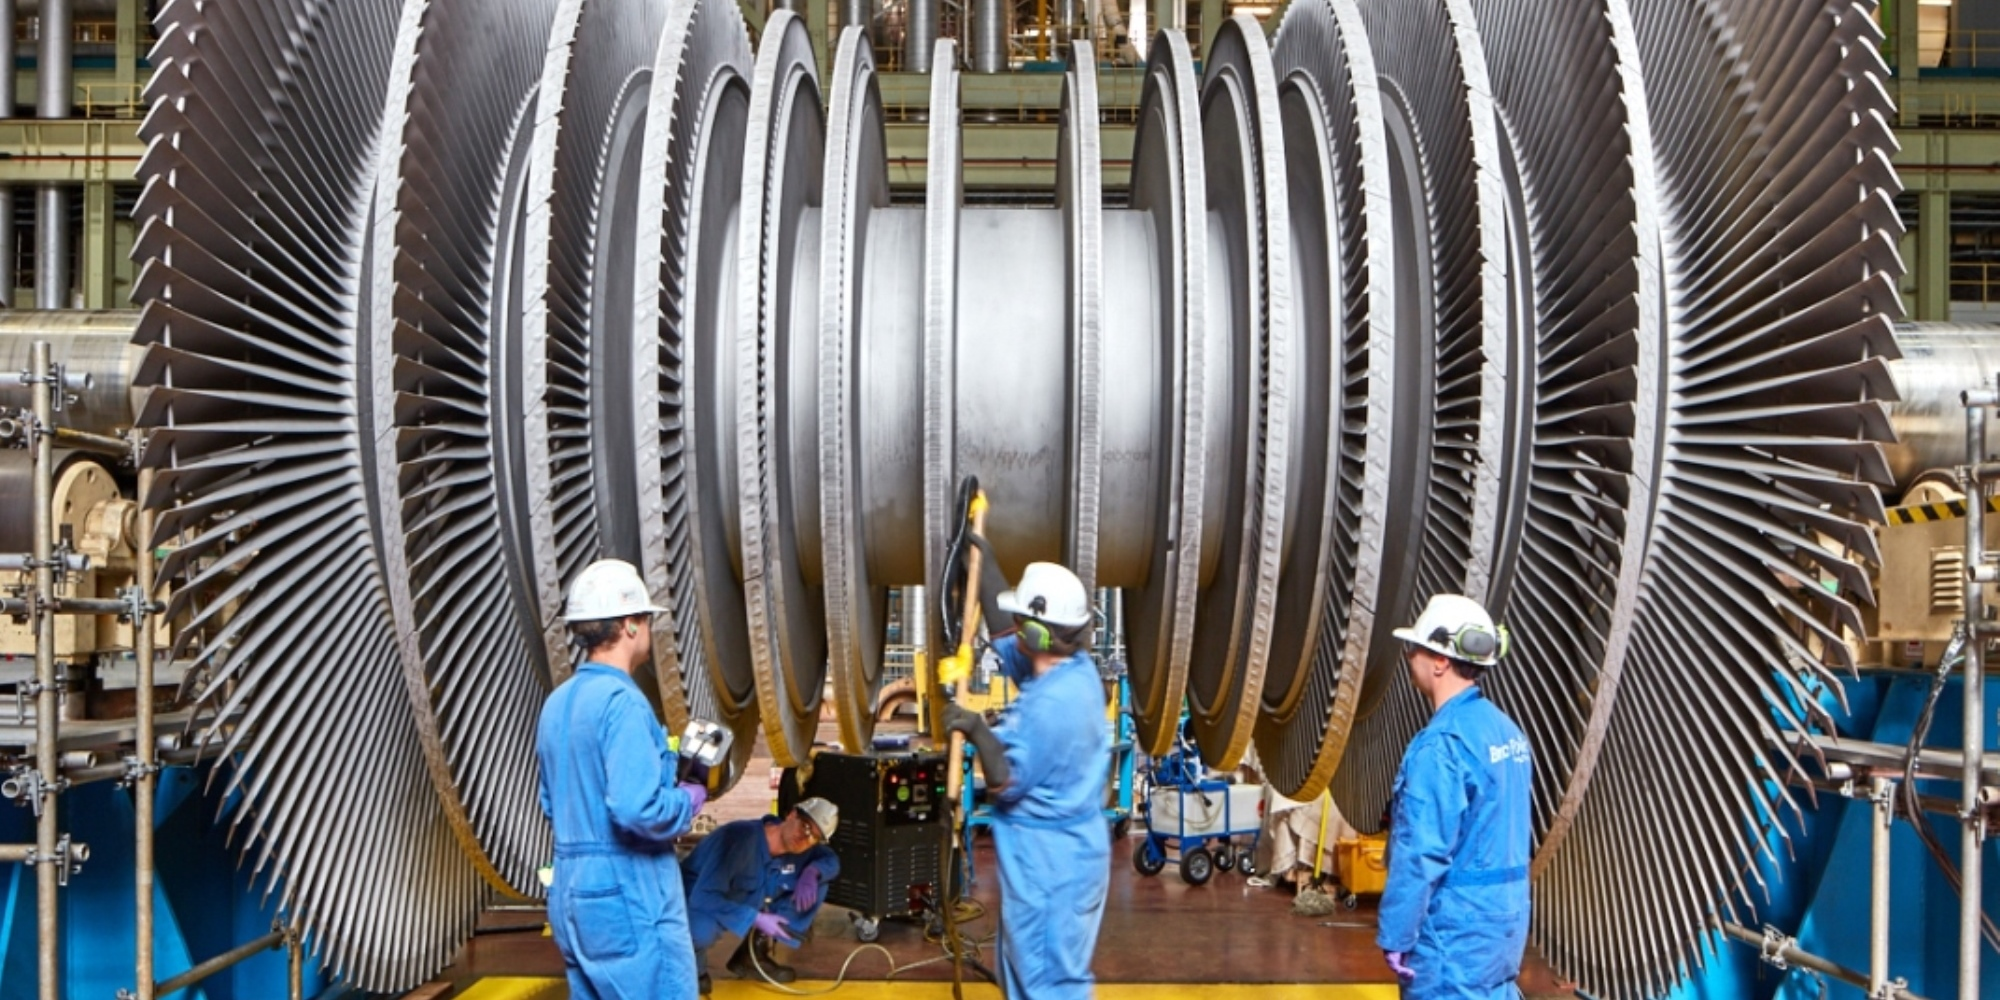 Employees in front of turbine rotor